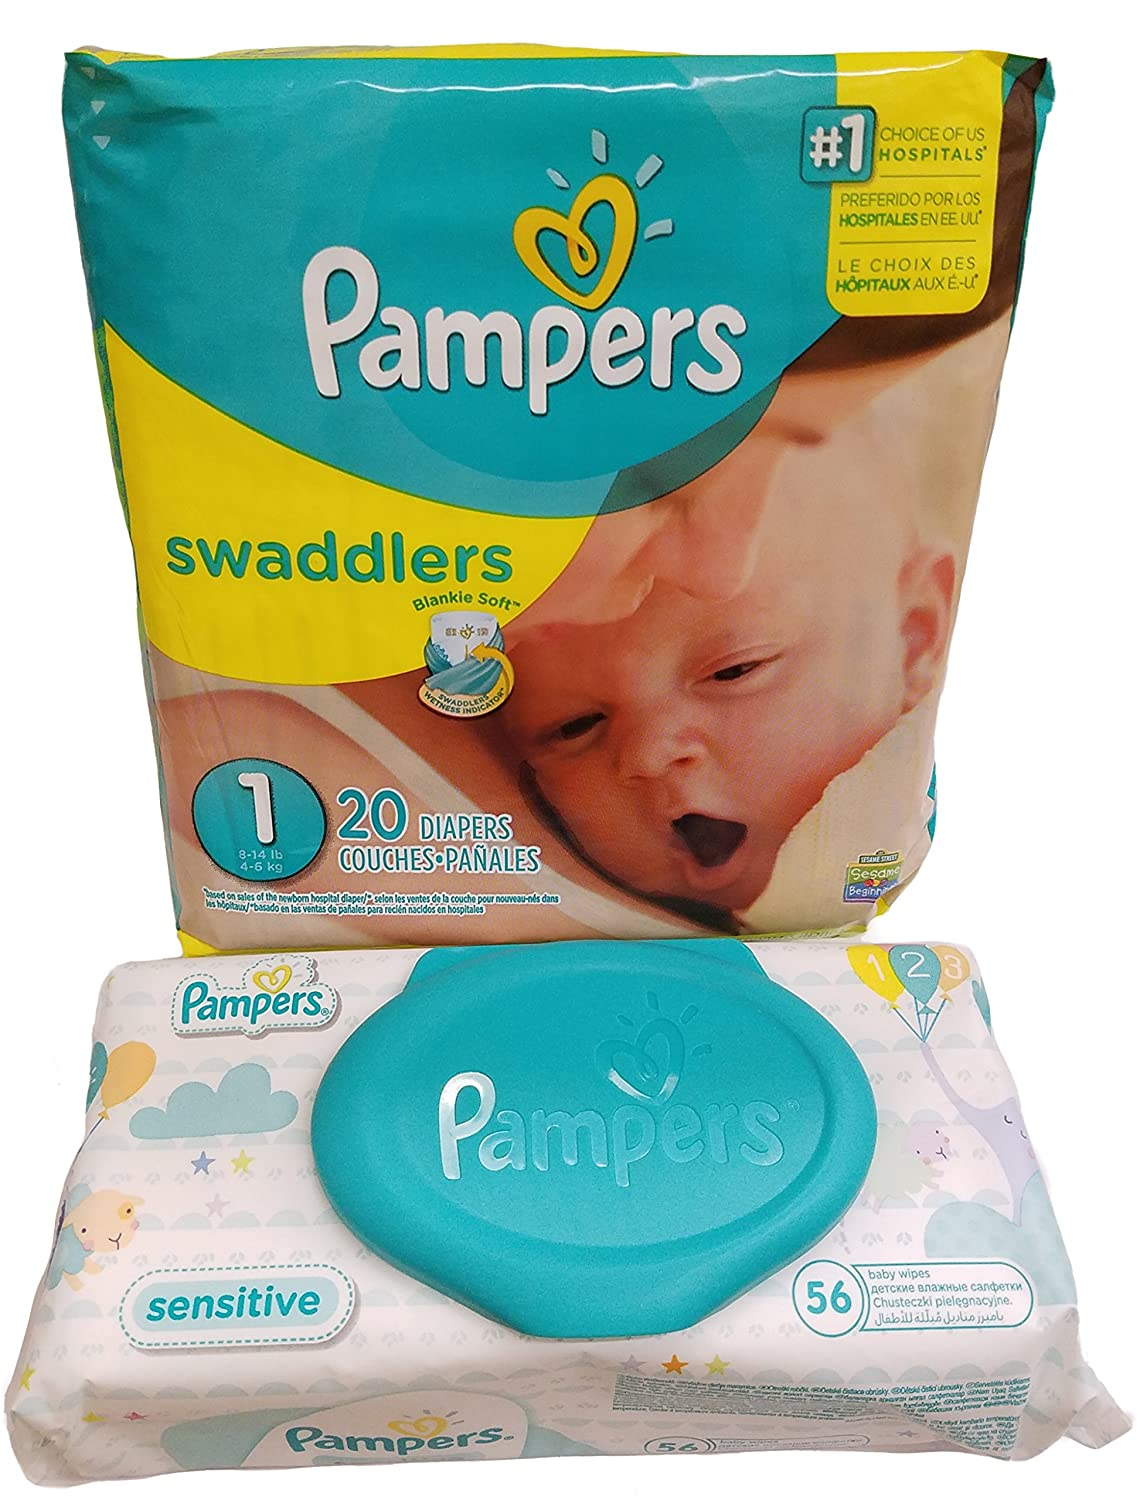 Pampers Swaddlers Diapers, Size 1, 20 Count - Pampers Sensitive Wipes Travel Pack 56 Count.